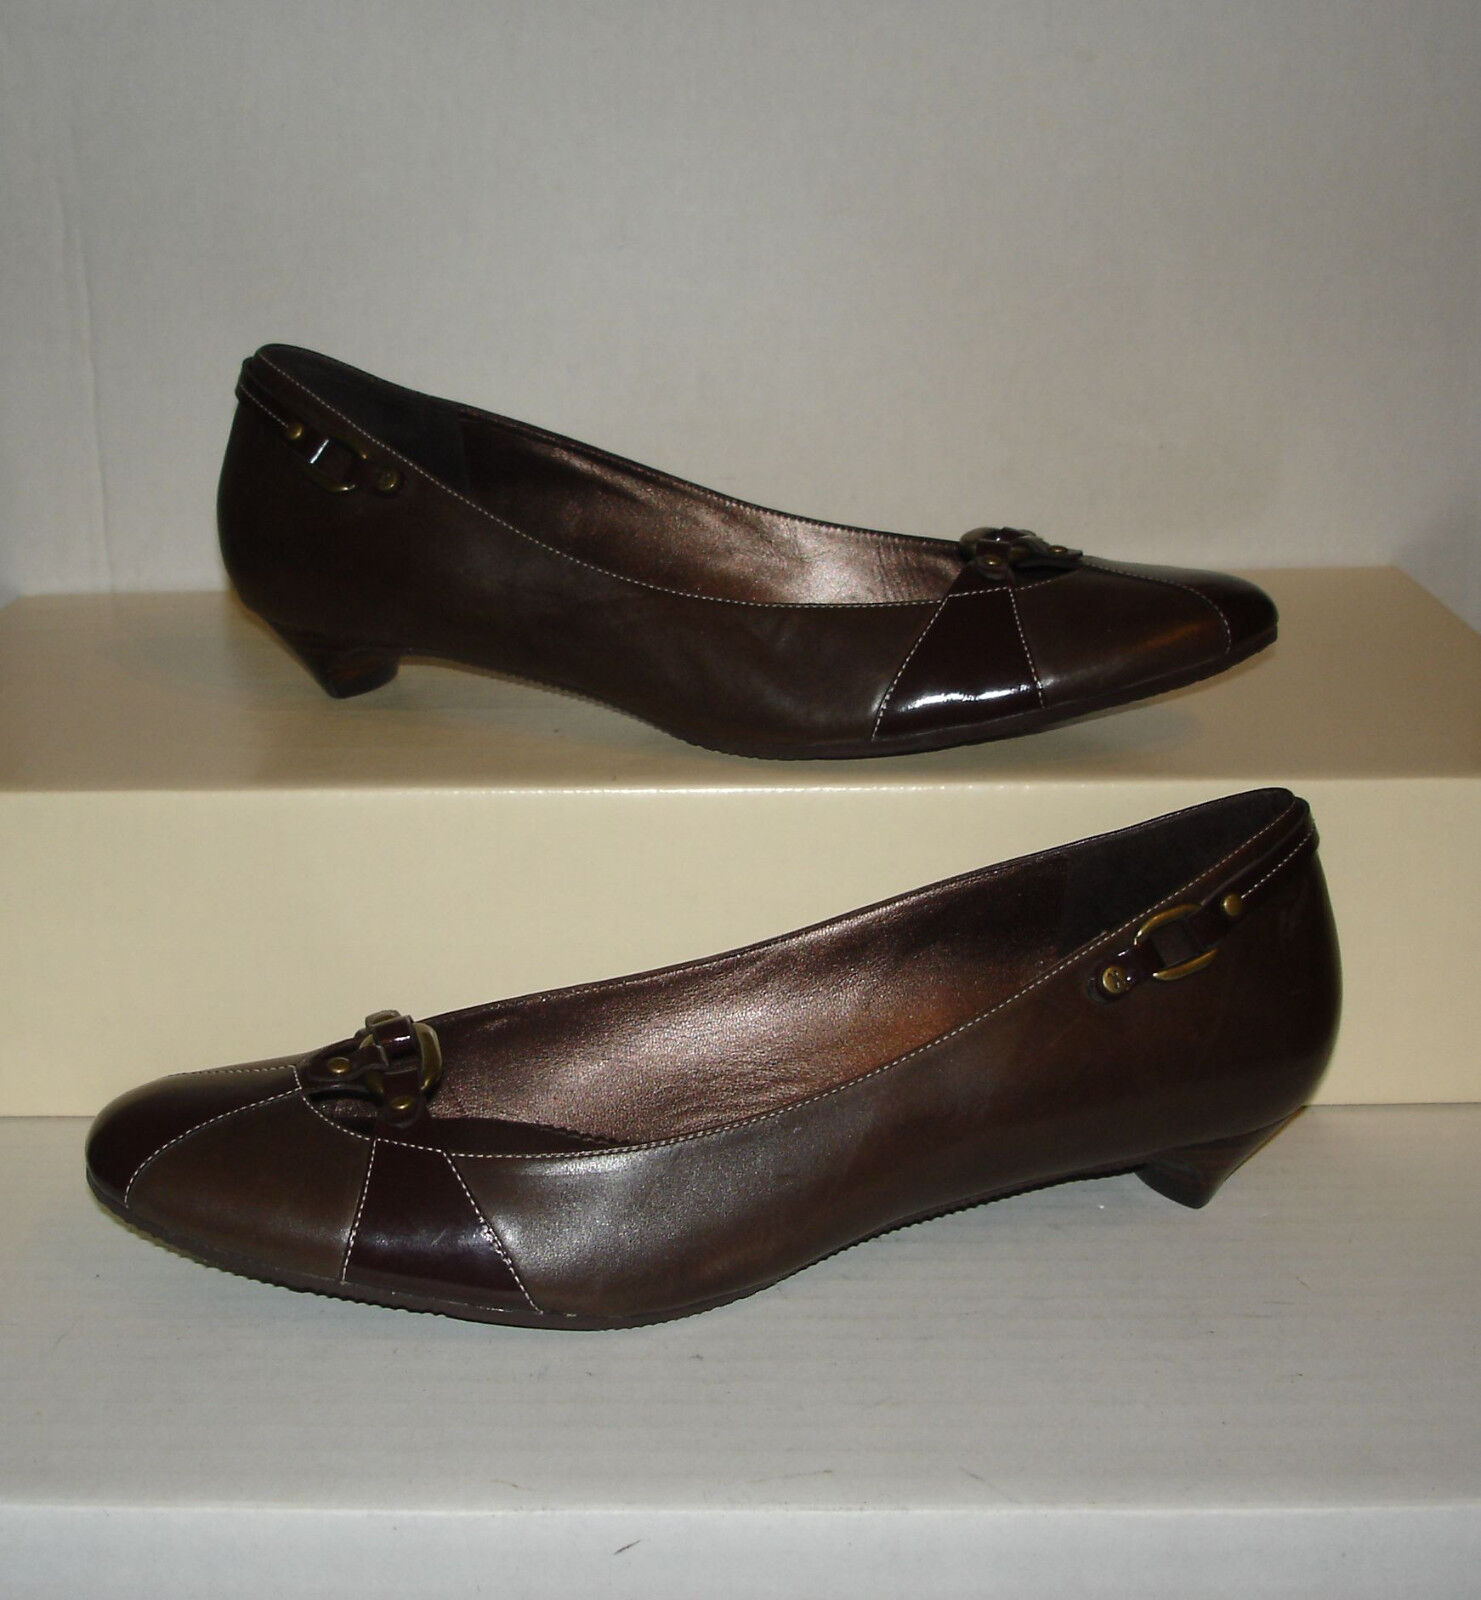 COLE HAAN Women's Dark Brown Smooth Leather Dress Loafers Pumps Size 9.5 B MINTY